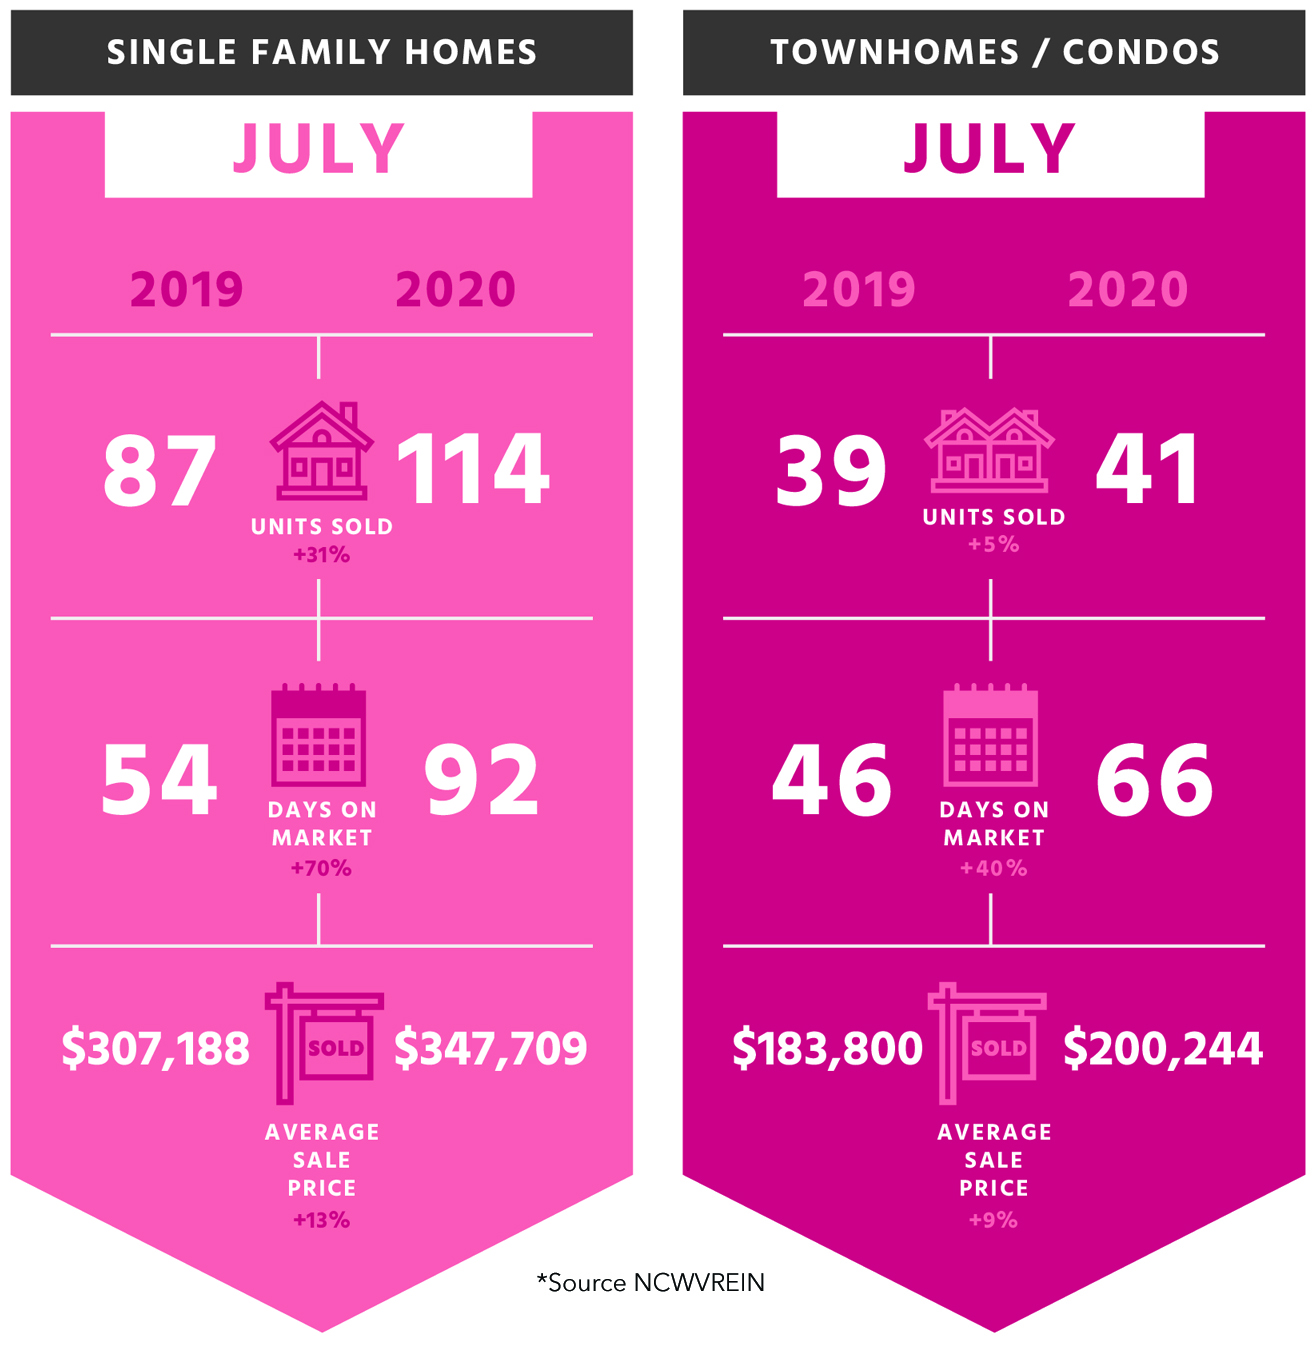 Average sale price of single family homes and townhomes/condos from 2019 vs 2020 for the month of july.